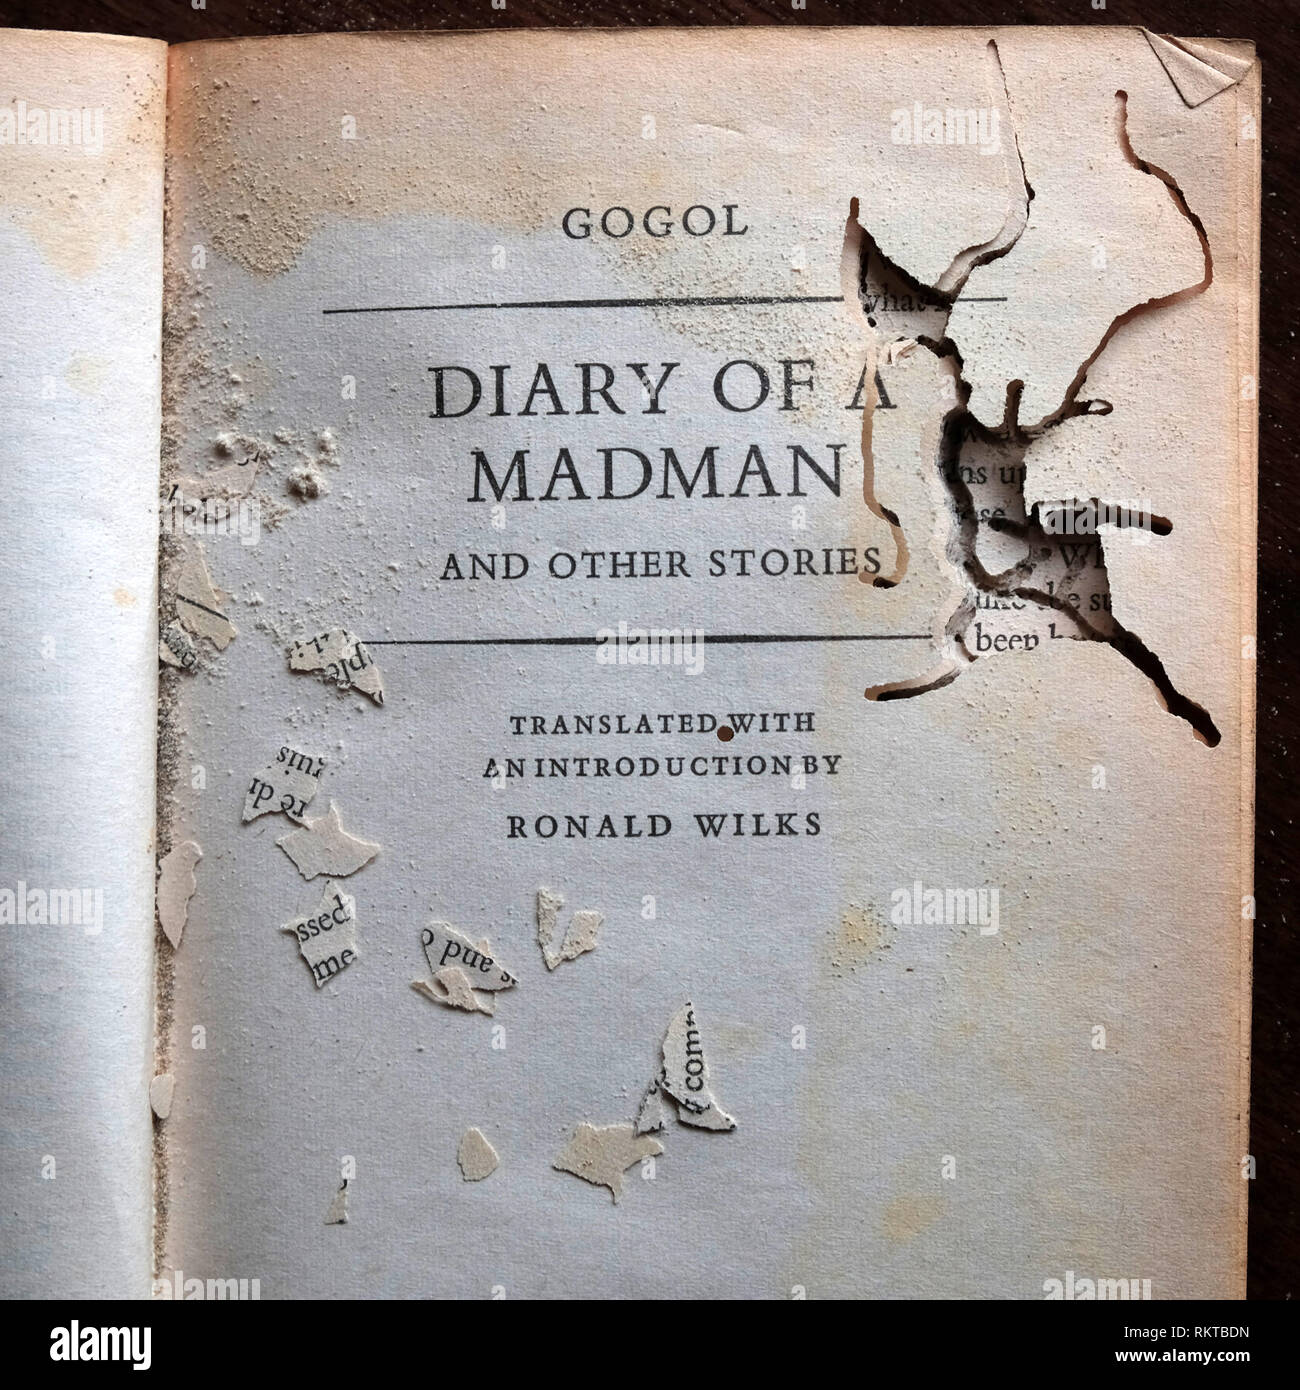 Bookworm infested copy of Nikolai Gogol's 'Diary of a Madman' - Stock Image